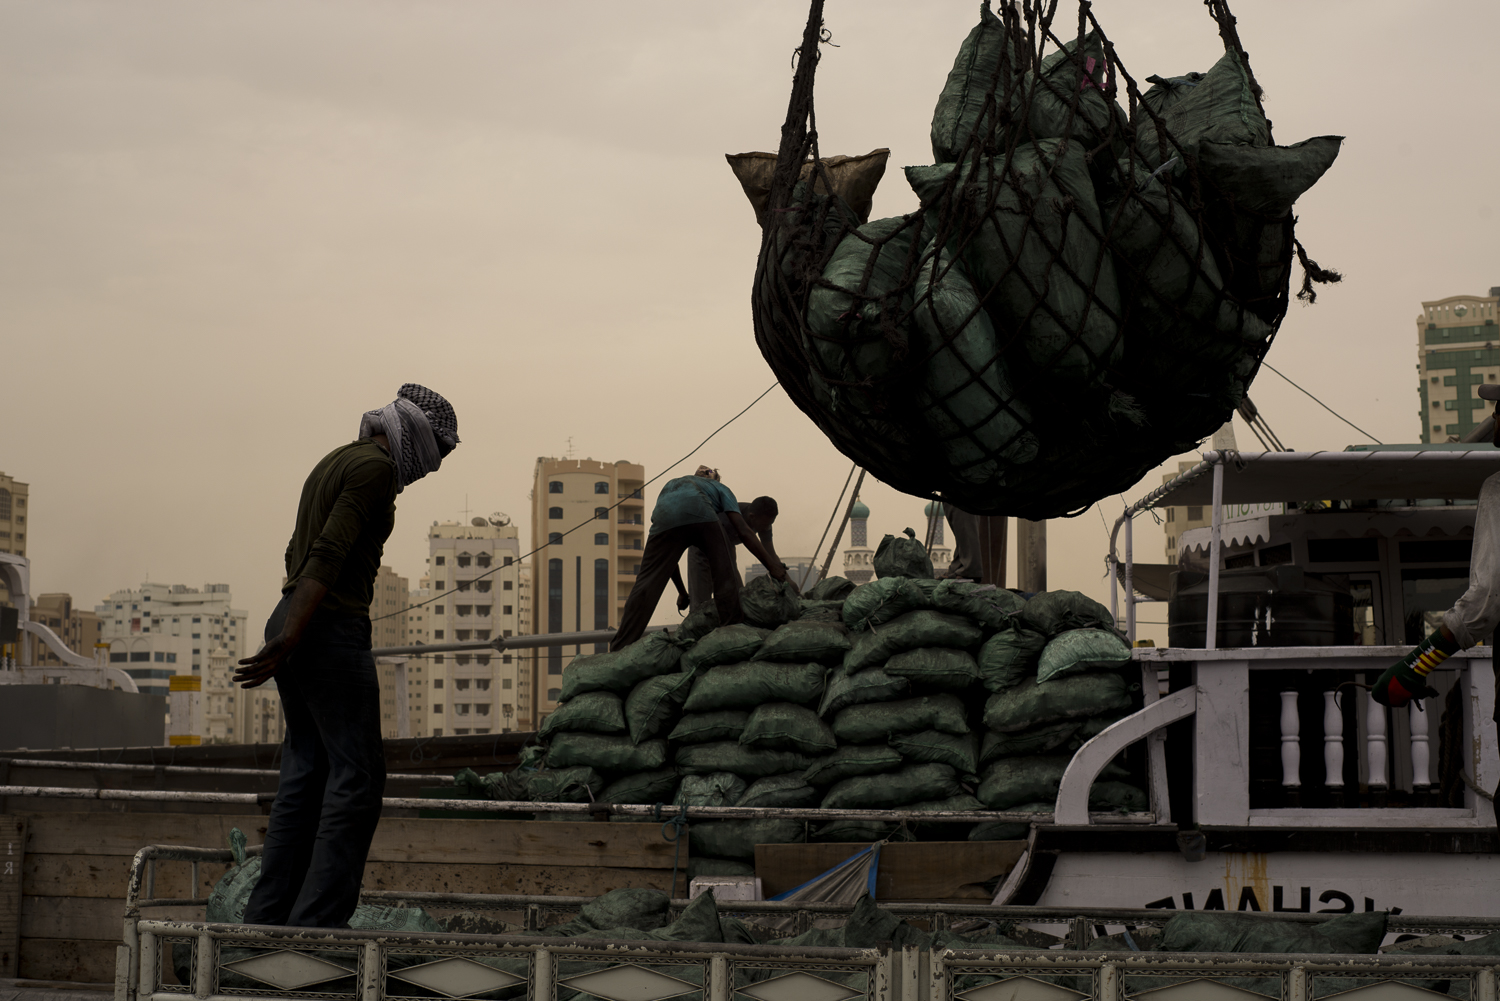 workers-charcoal-workers-uae-jo-kearney-photography-video-travel-photography.jpg